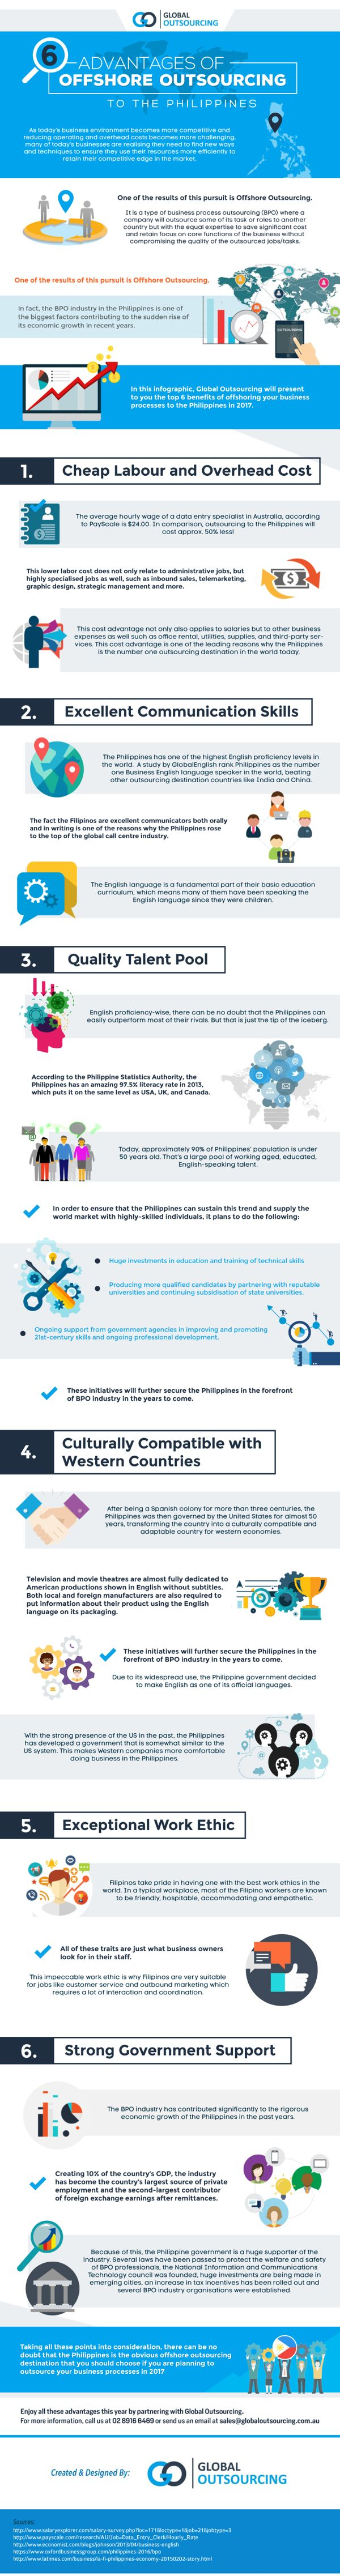 6 Advantages of Offshore Outsourcing to the Philippines 1